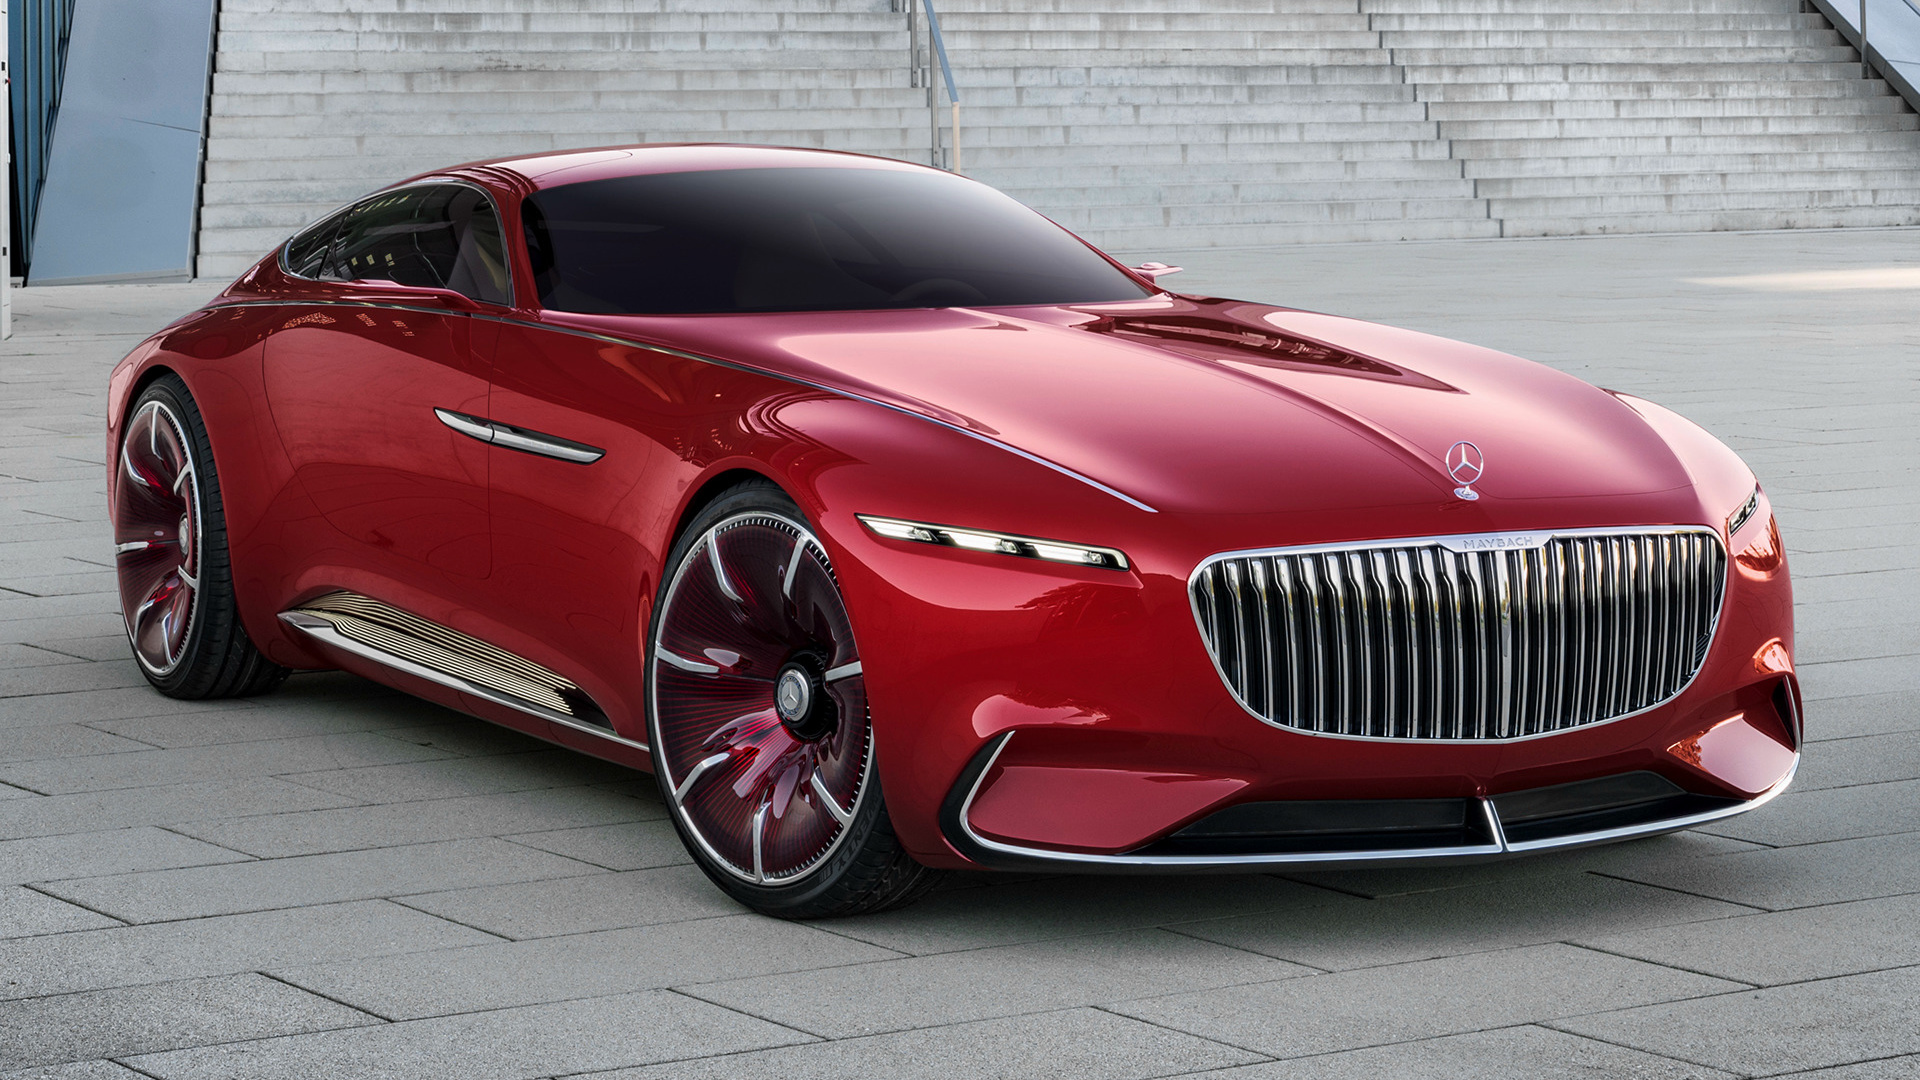 2016 vision mercedes maybach 6 wallpapers and hd images car pixel. Black Bedroom Furniture Sets. Home Design Ideas